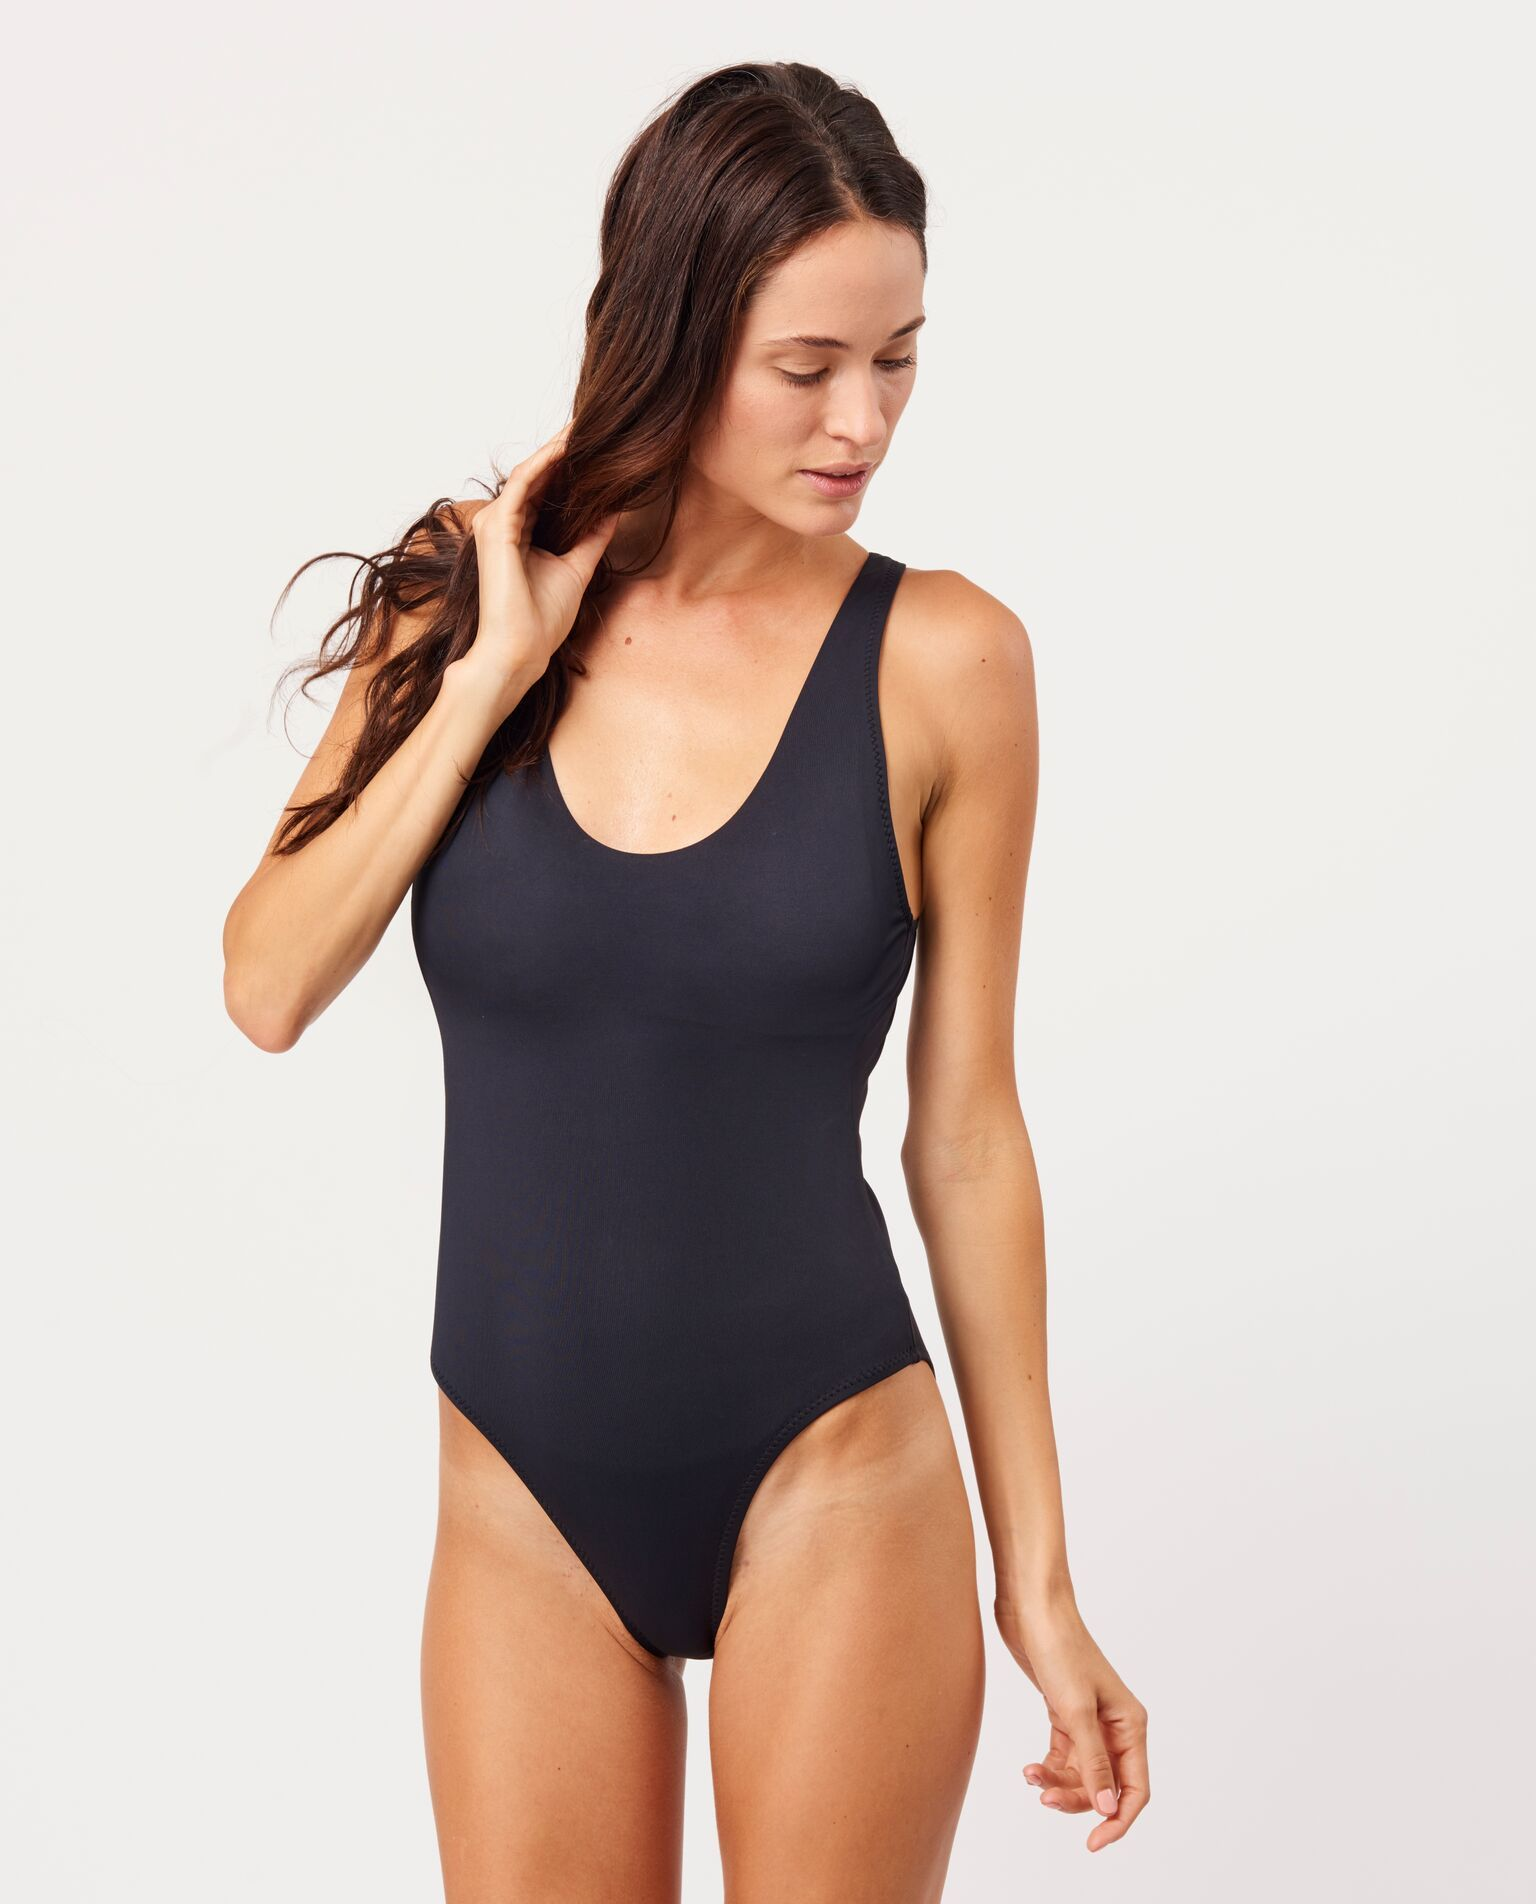 077ca768c05 Sleek flattering one piece swimsuit from Andie swim.